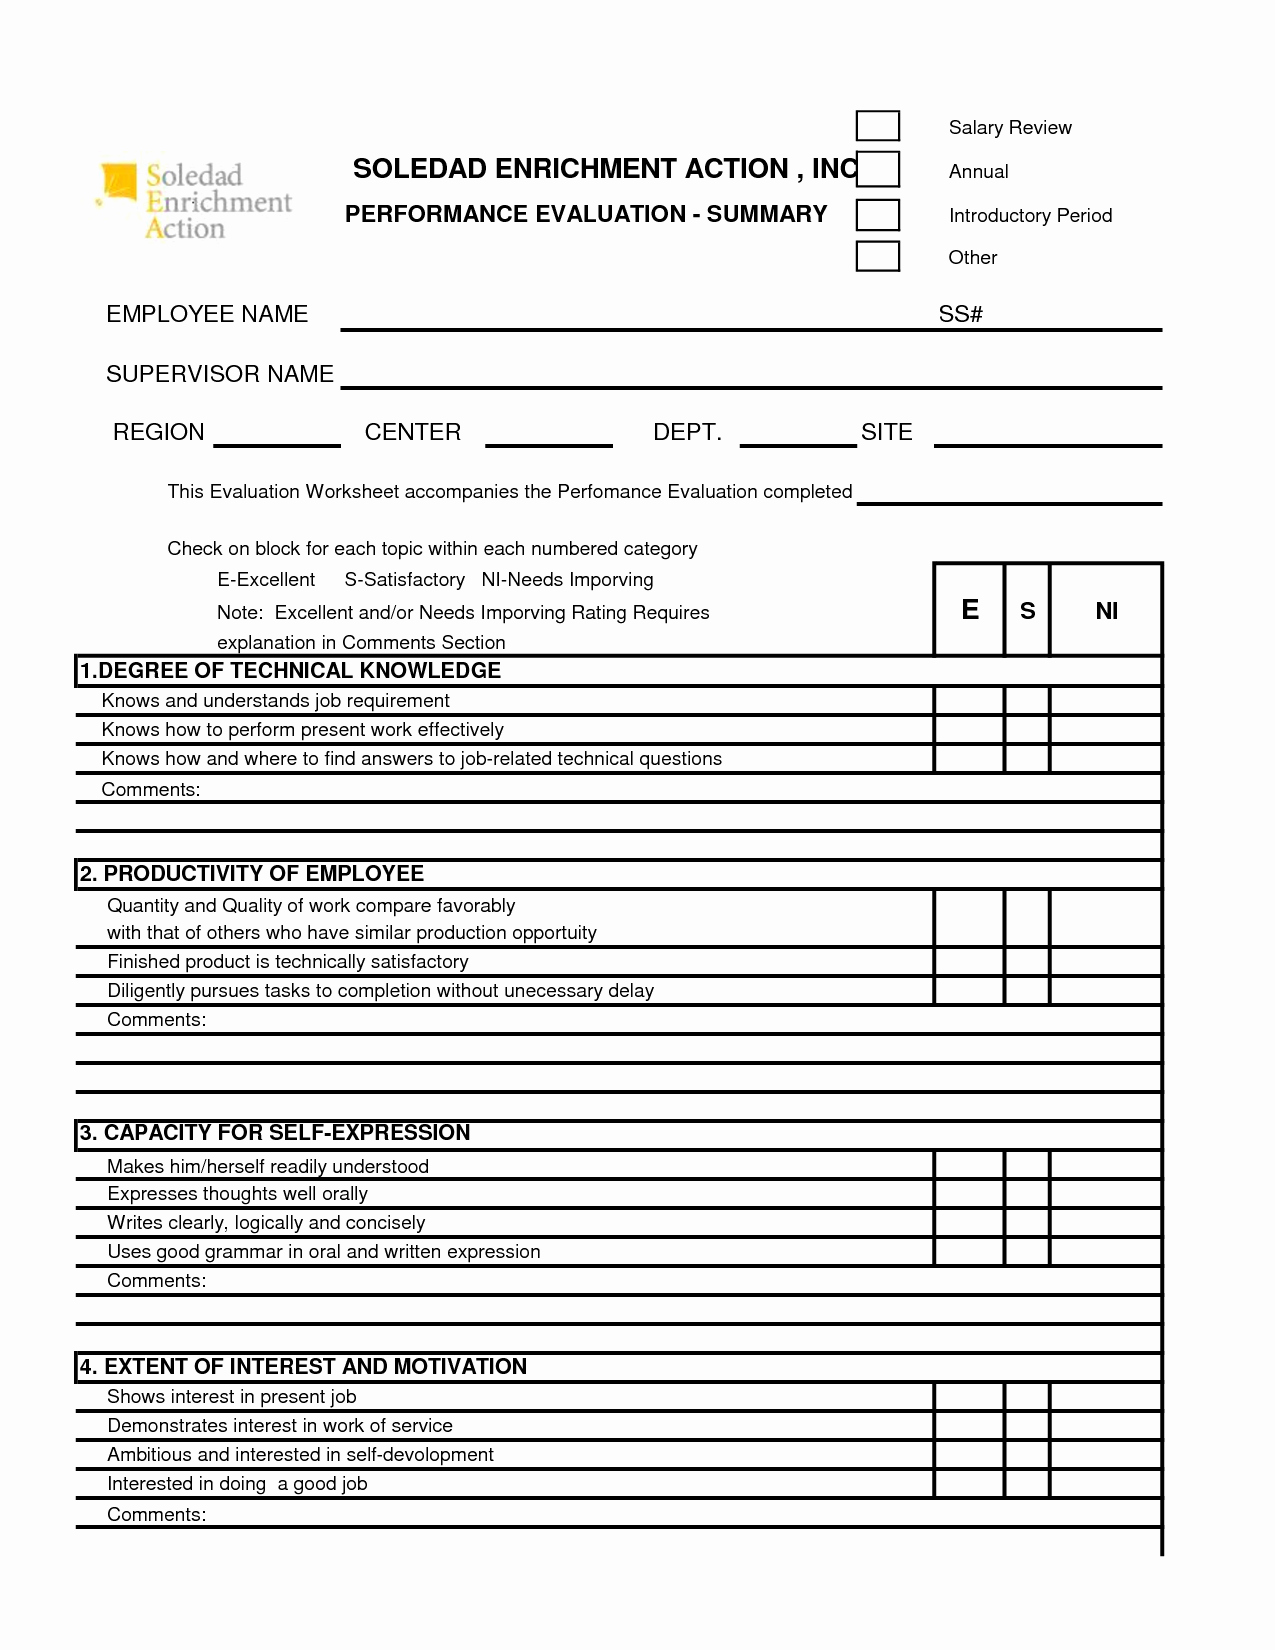 Employee Performance Appraisal form Template Beautiful Free 360 Performance Appraisal form Google Search